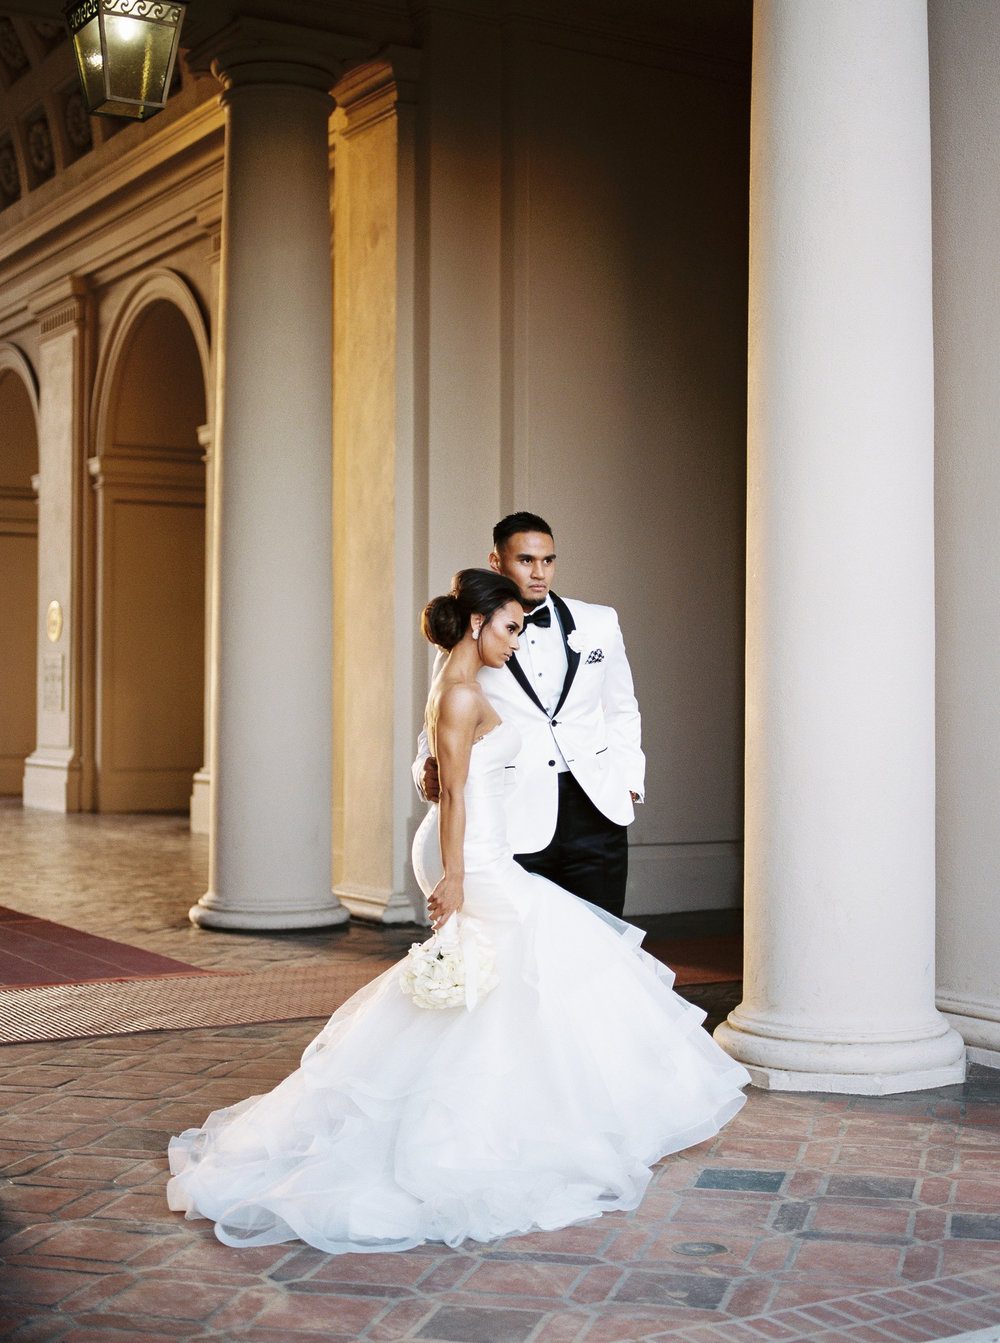 dennisroycoronel_pasadena_wedding_photographer-31.jpg